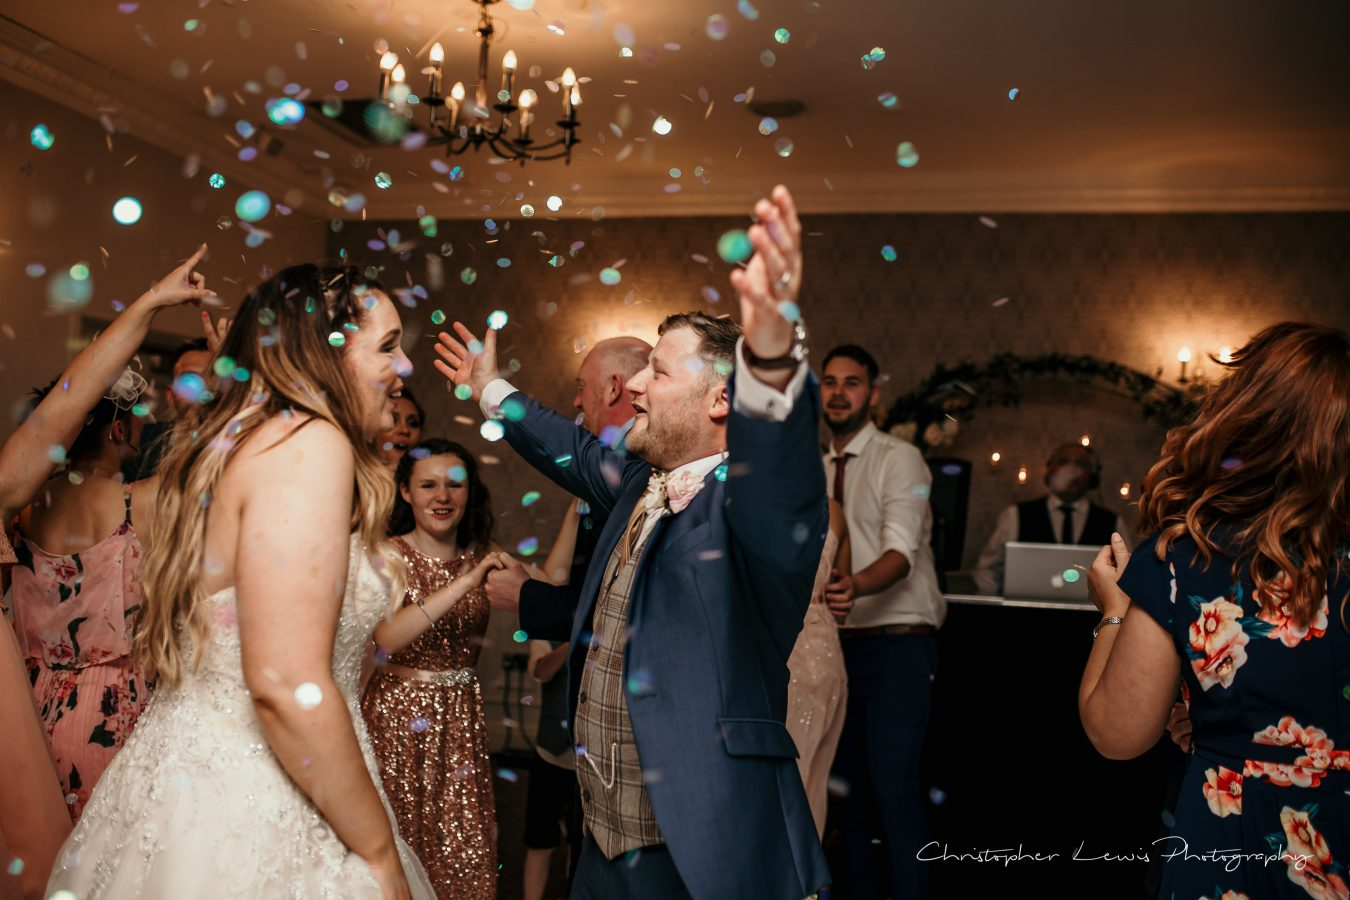 Mottram-Hall-Wedding-Christopher-Lewis-Photography- 154